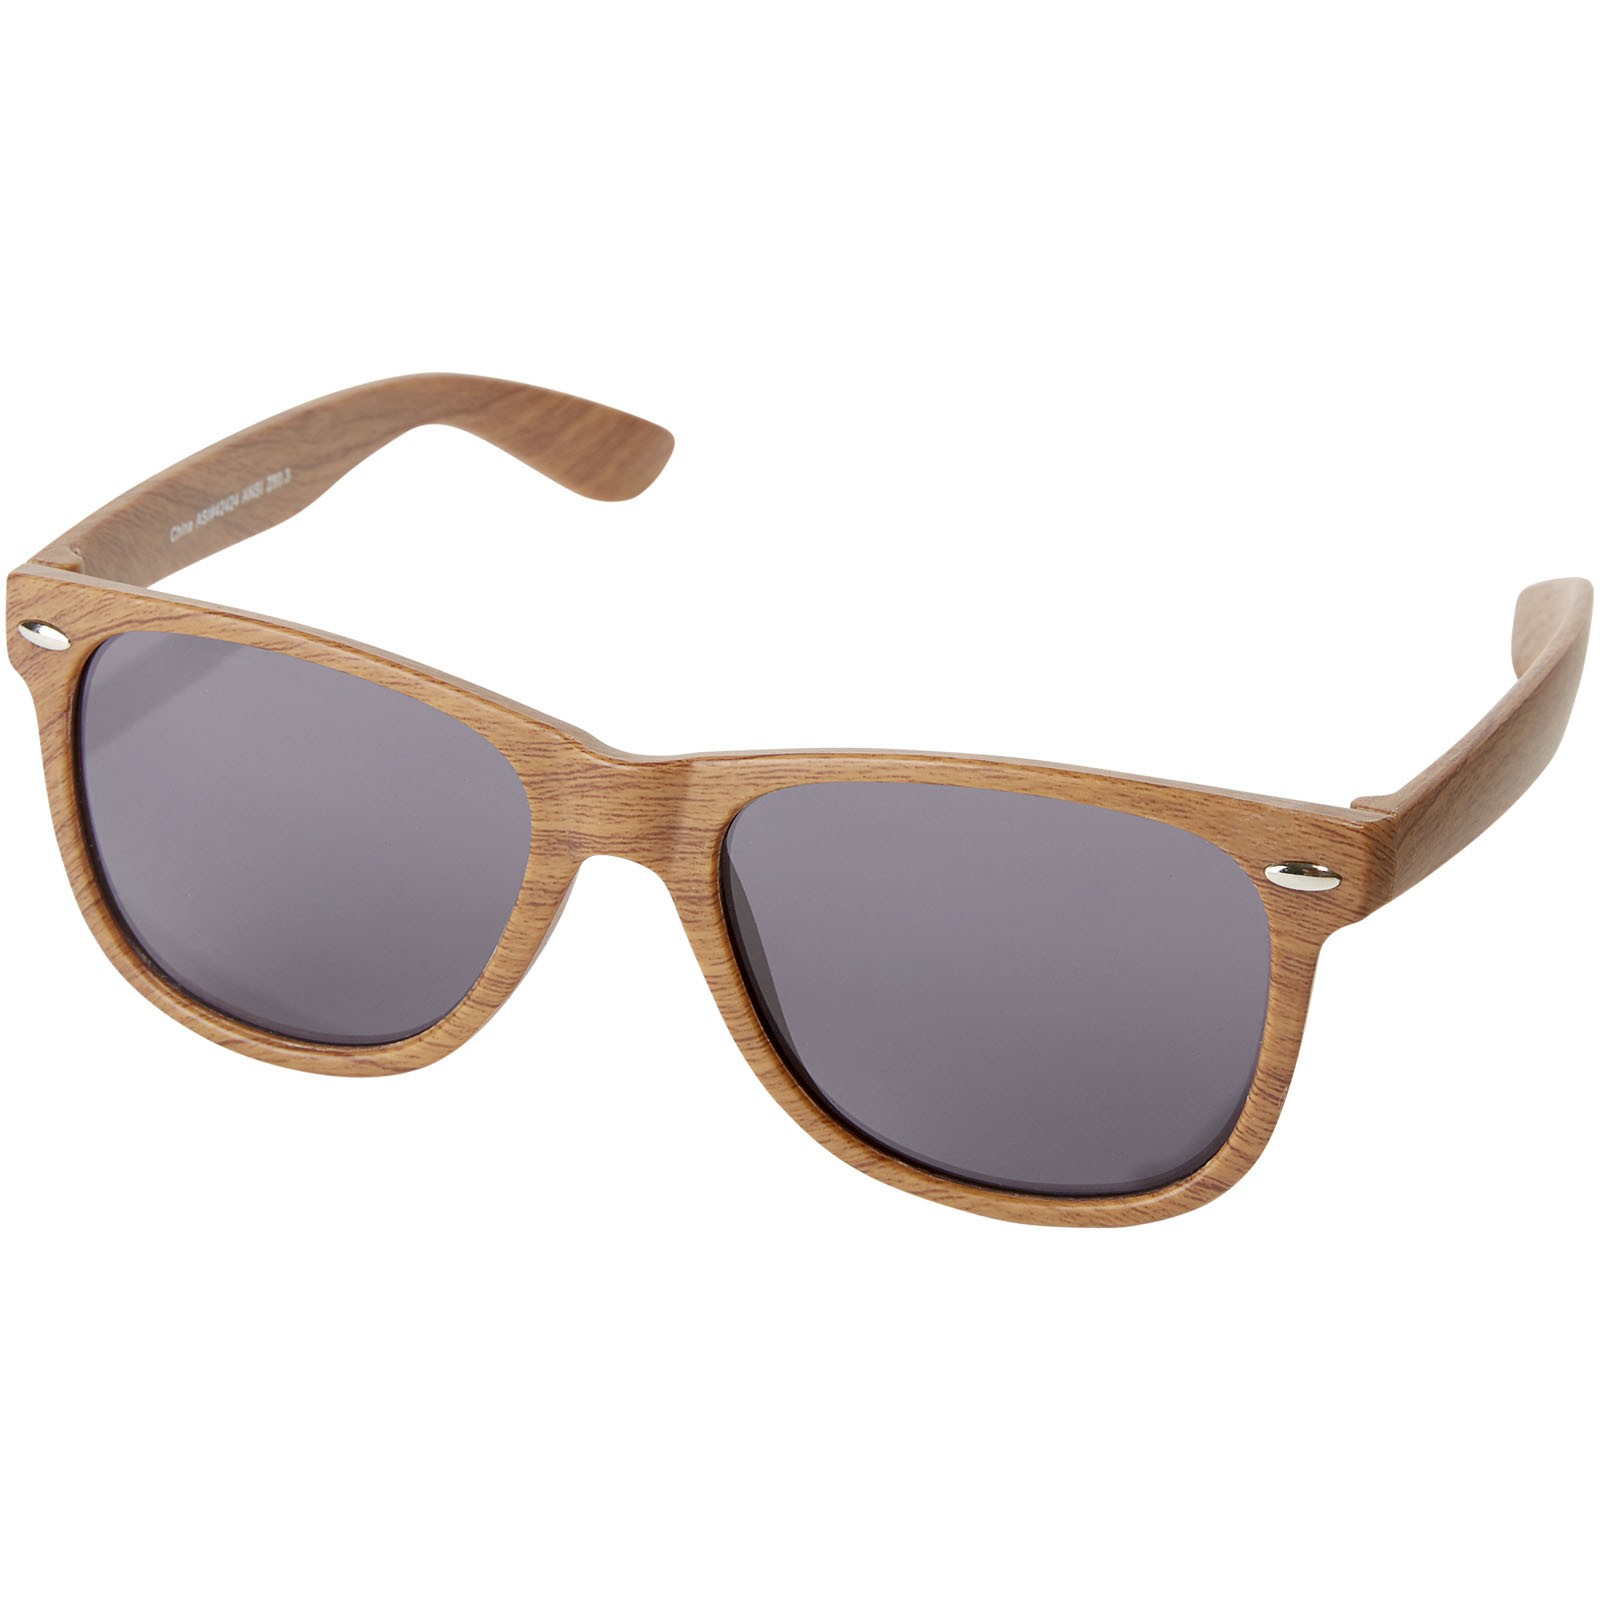 Allen sunglasses - Brown